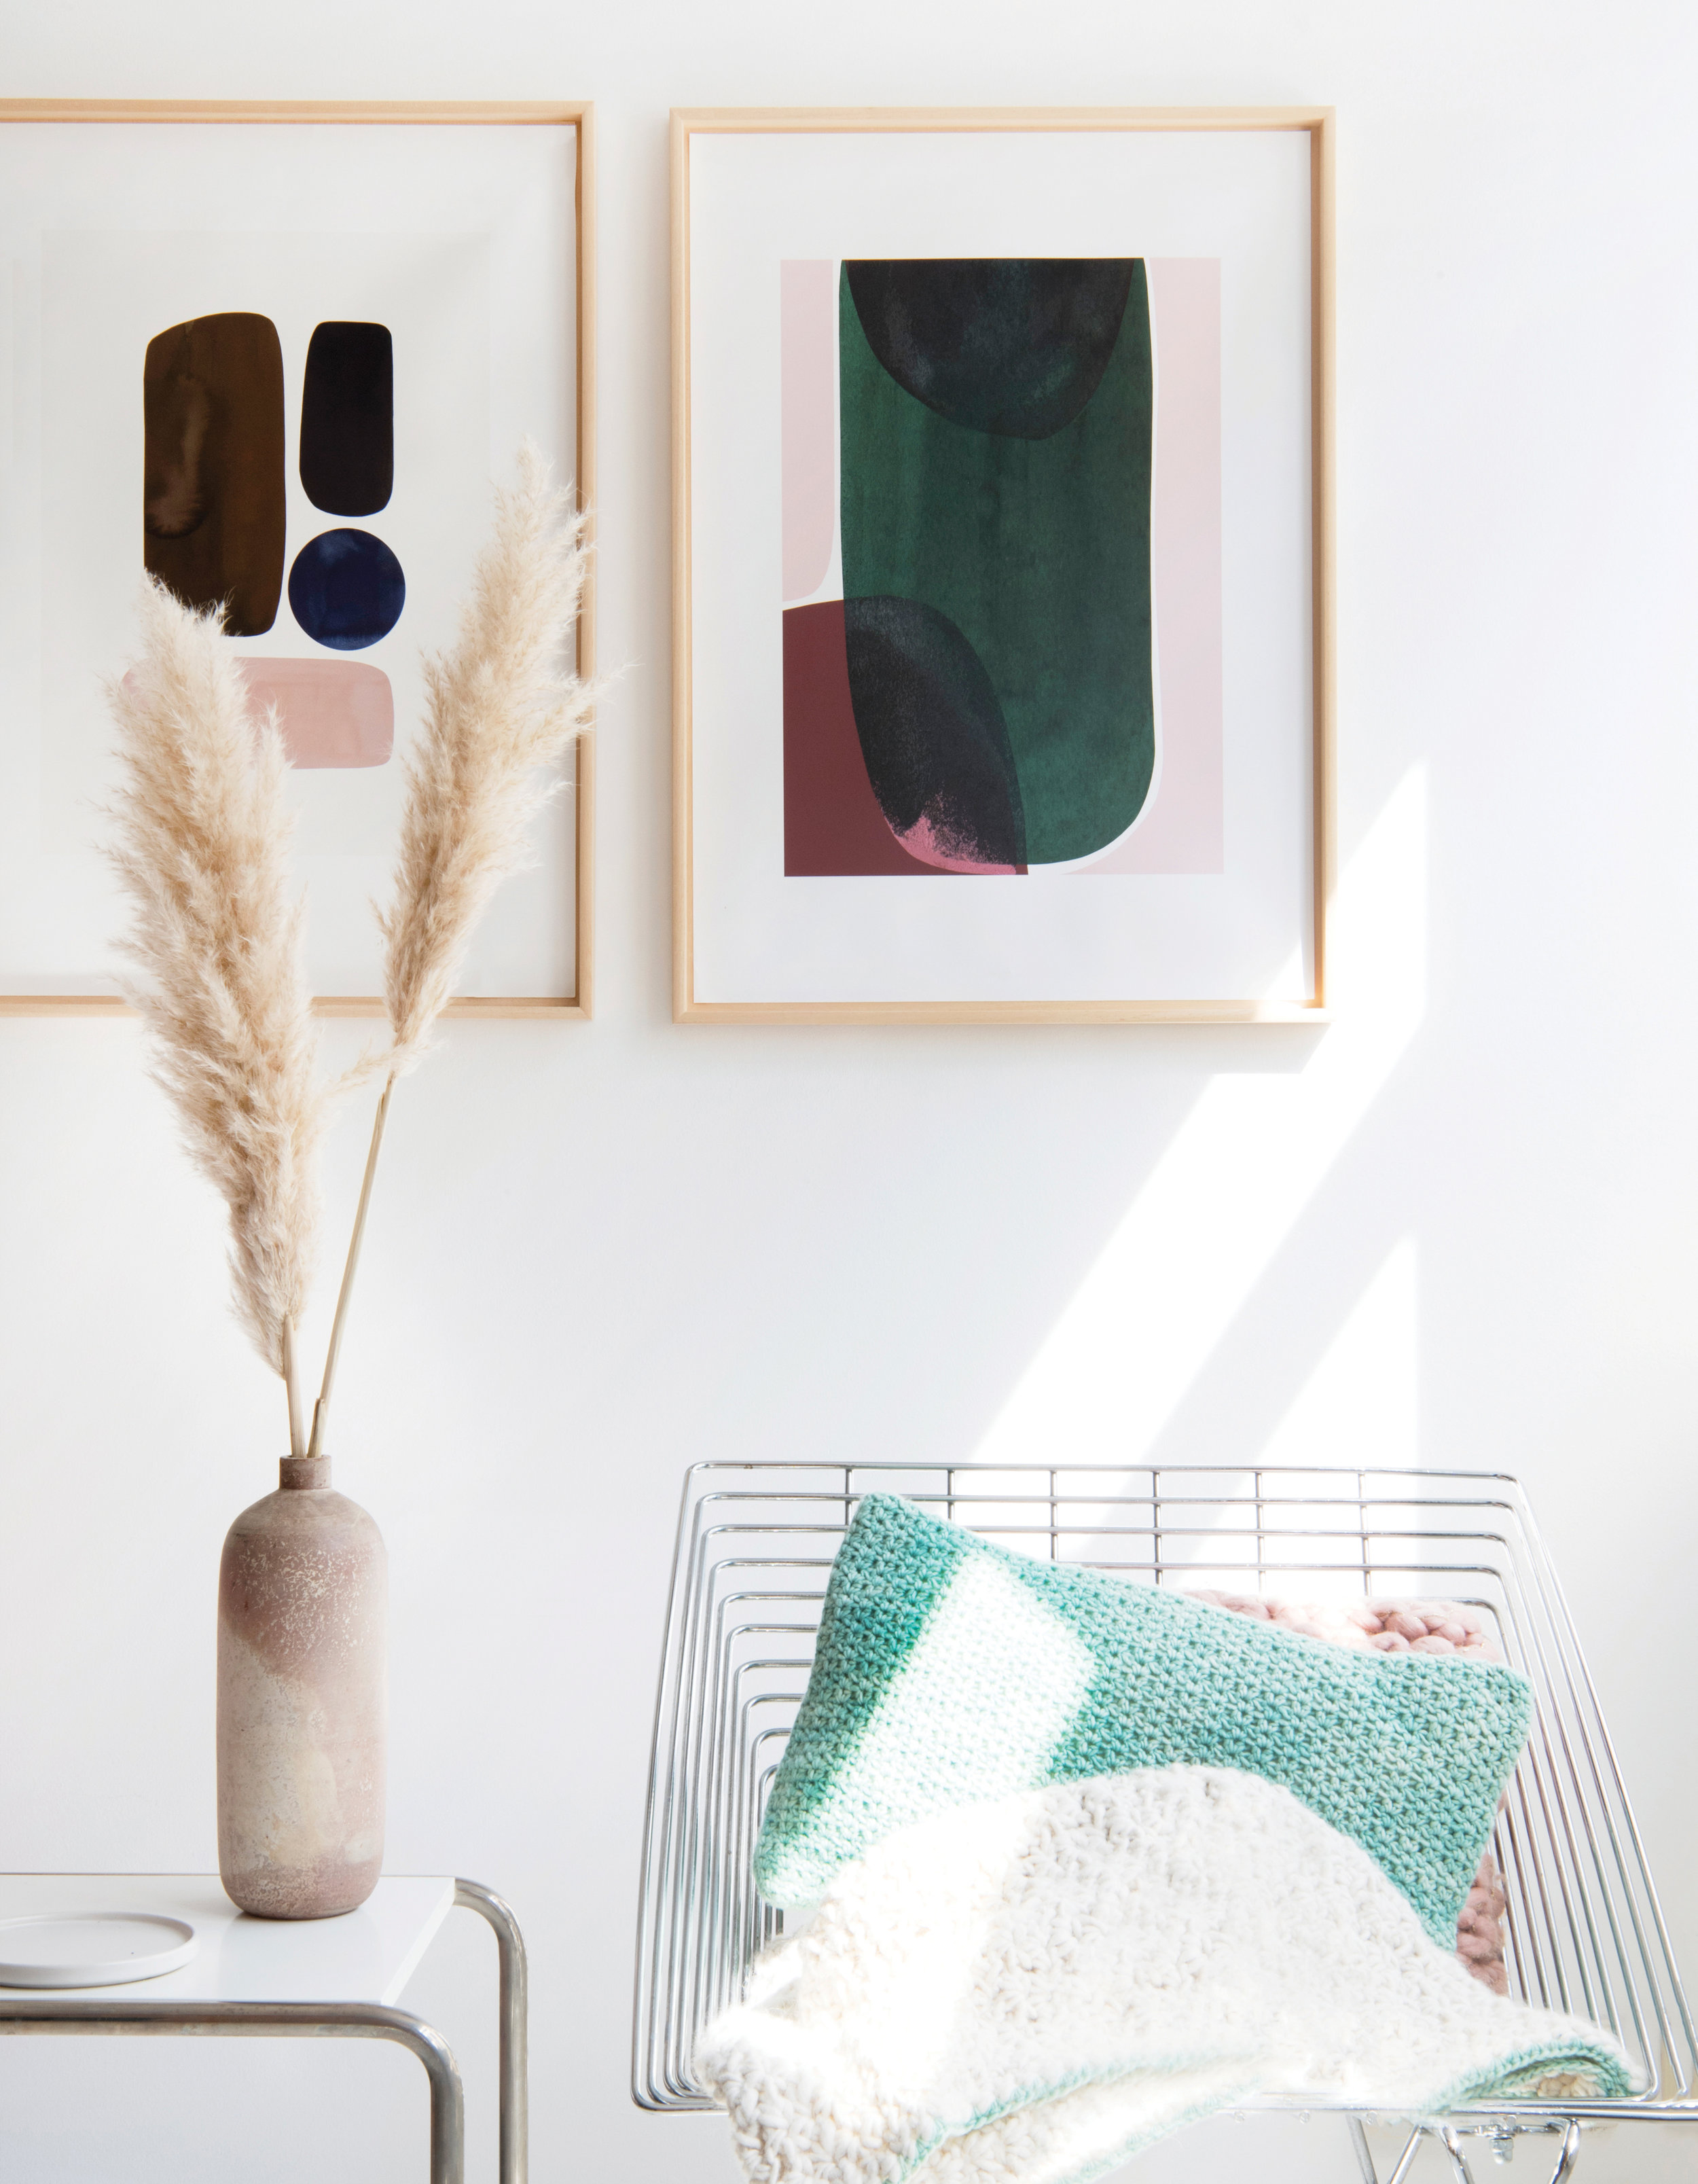 KOEL Interiors - Style your home with yarn accessories